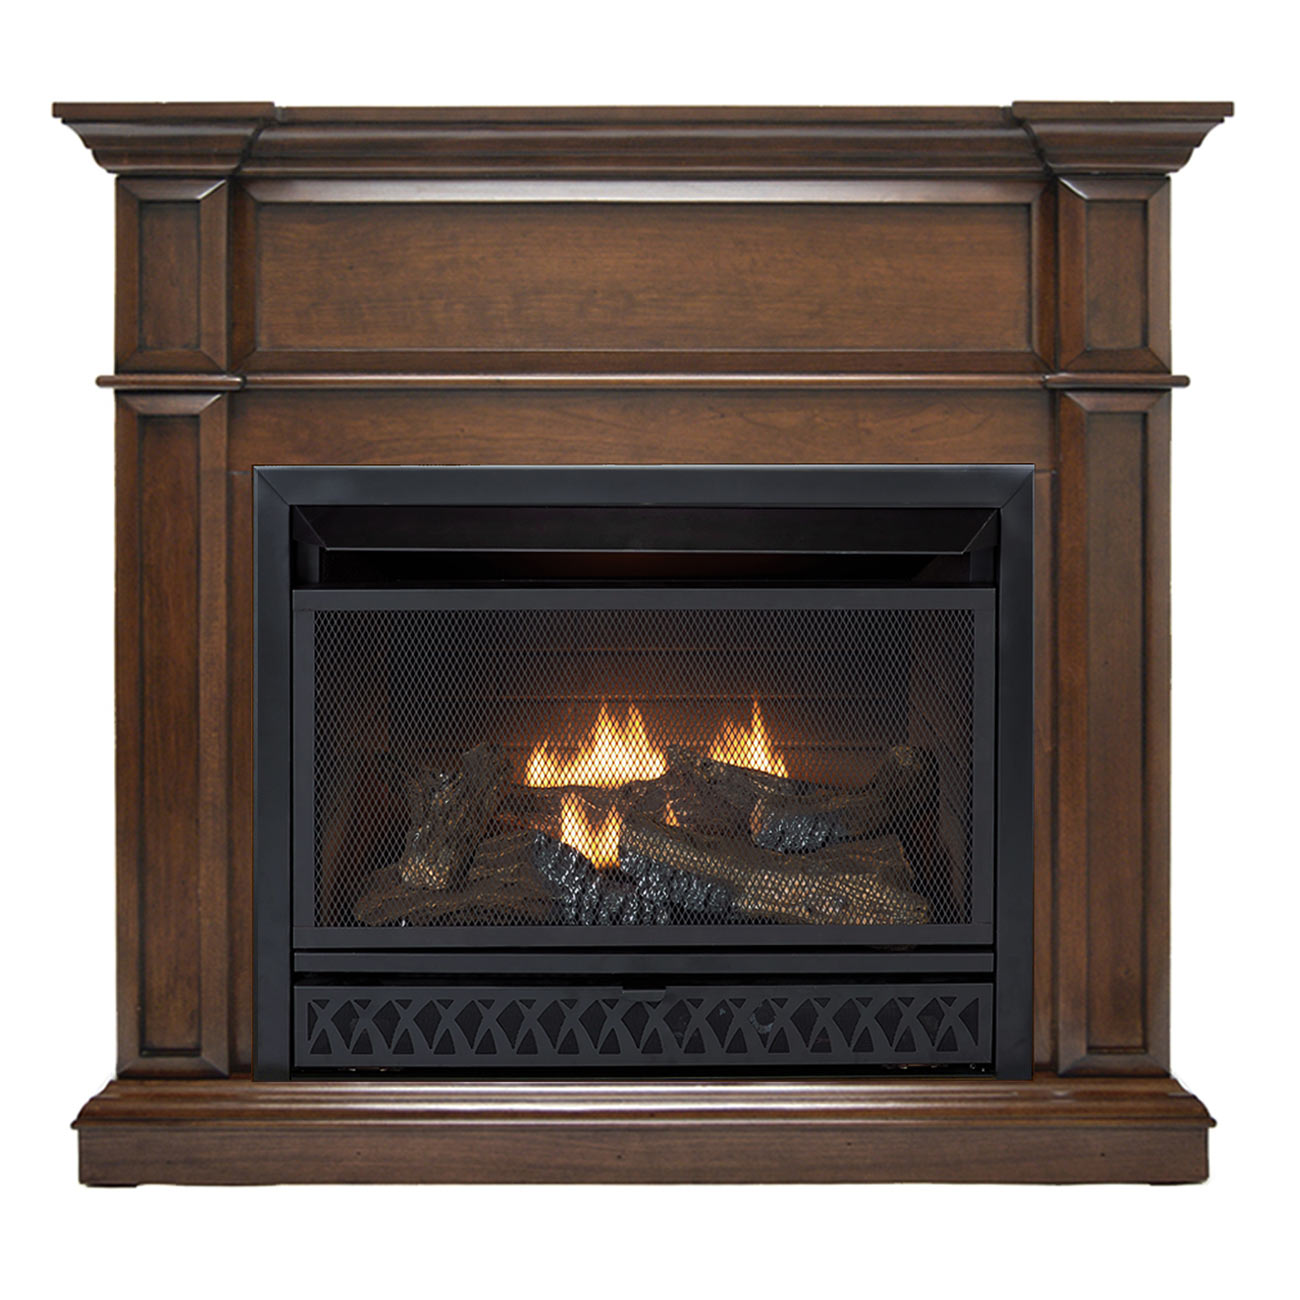 HearthSense Ventless Fireplace System with Dual Fuel Technology